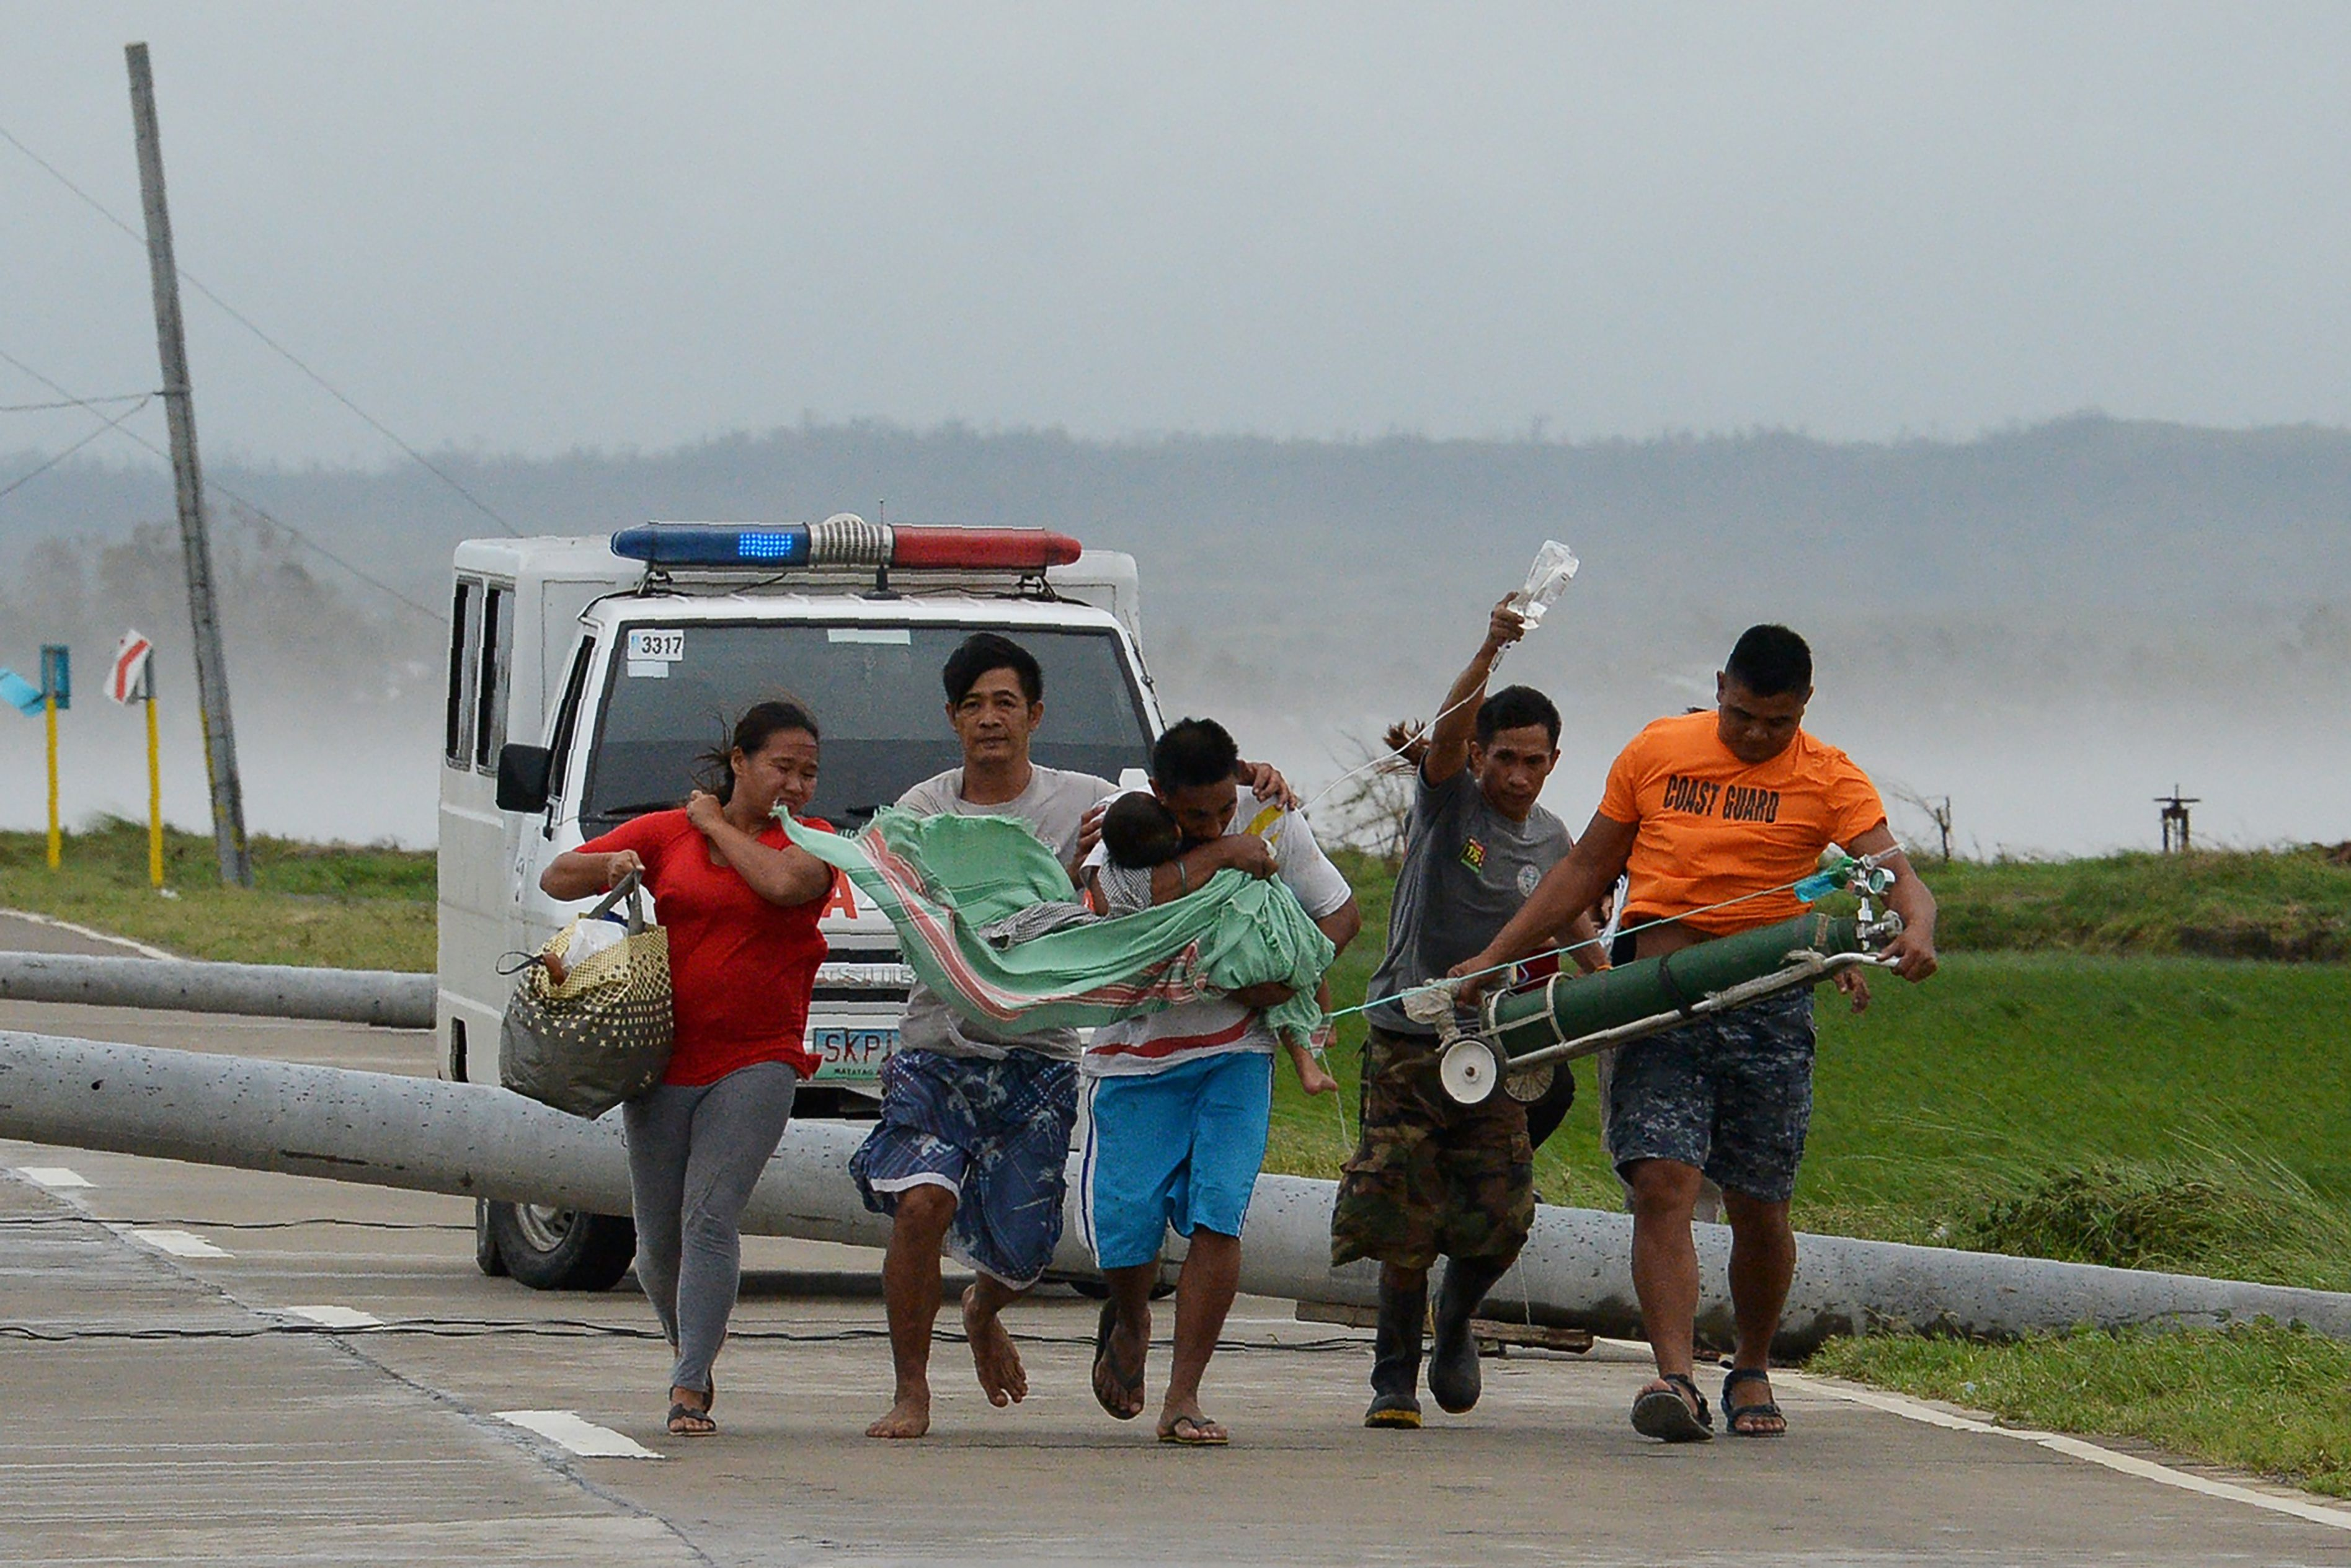 A father carries his sick child as it is being transferred to another car after their ambulance is stuck on a highway by toppled electric posts caused by strong winds after Typhoon Mangkhut hit Baggao town in Cagayan province, north of Manila on Sept. 15, 2018.